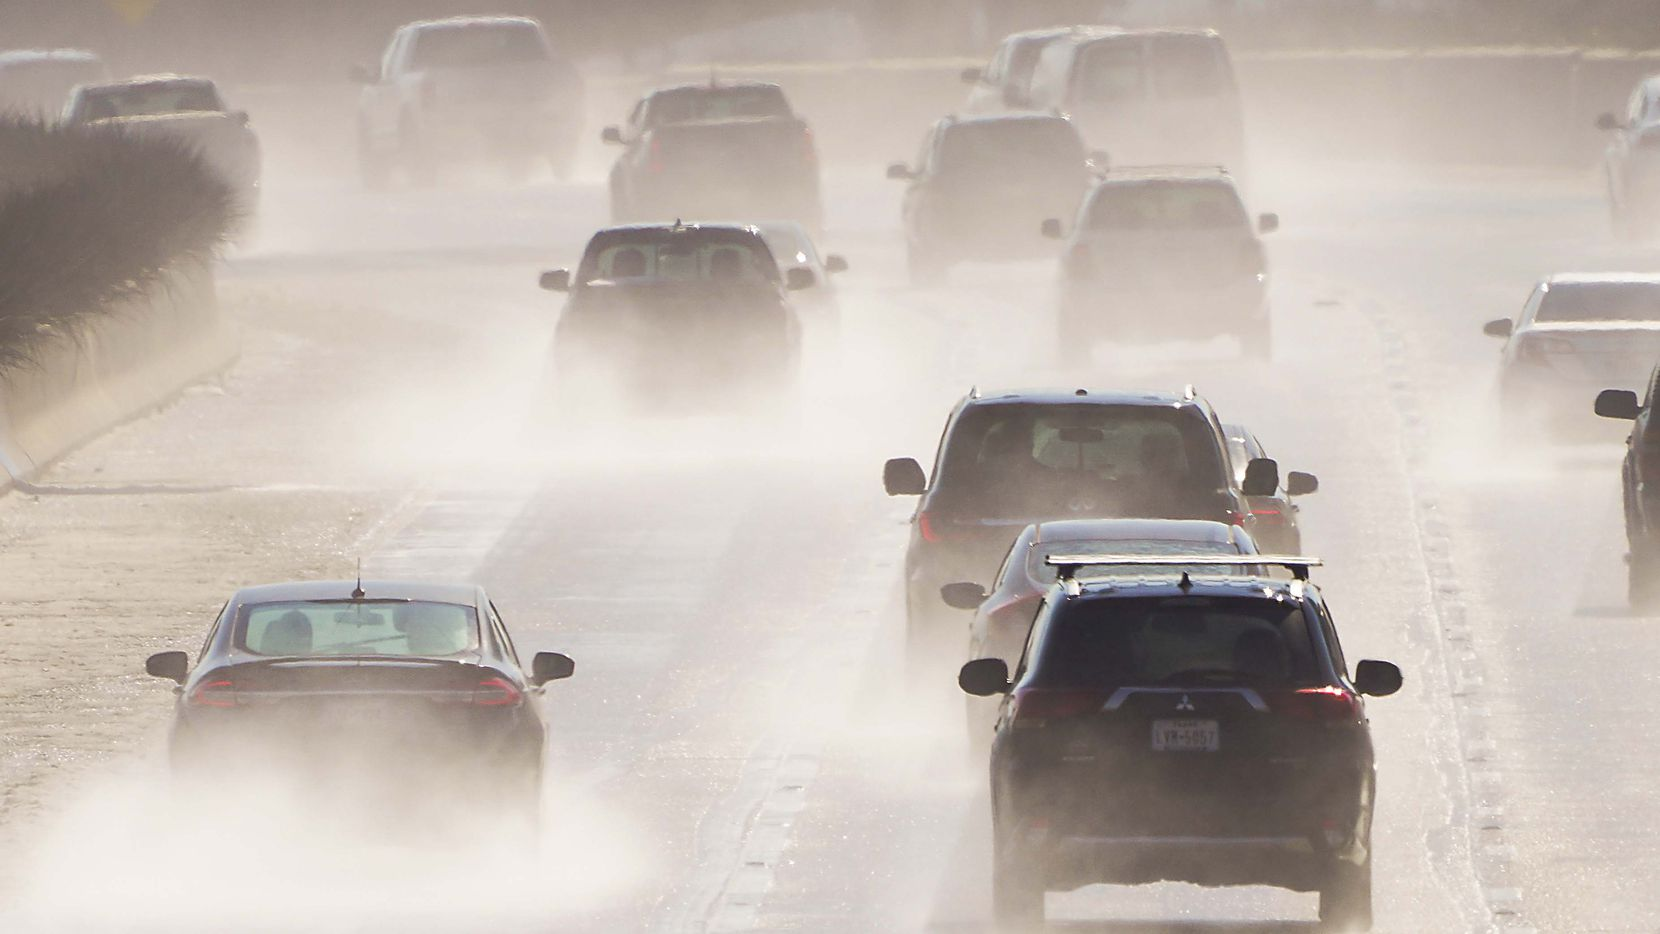 Water sprays from melting roads as traffic head south on US-75, Central Expressway, near Forest Lane as North Texas begins to thaw from  winter storms that brought snow and freezing temperatures on Friday, Feb. 19, 2021, in Dallas.